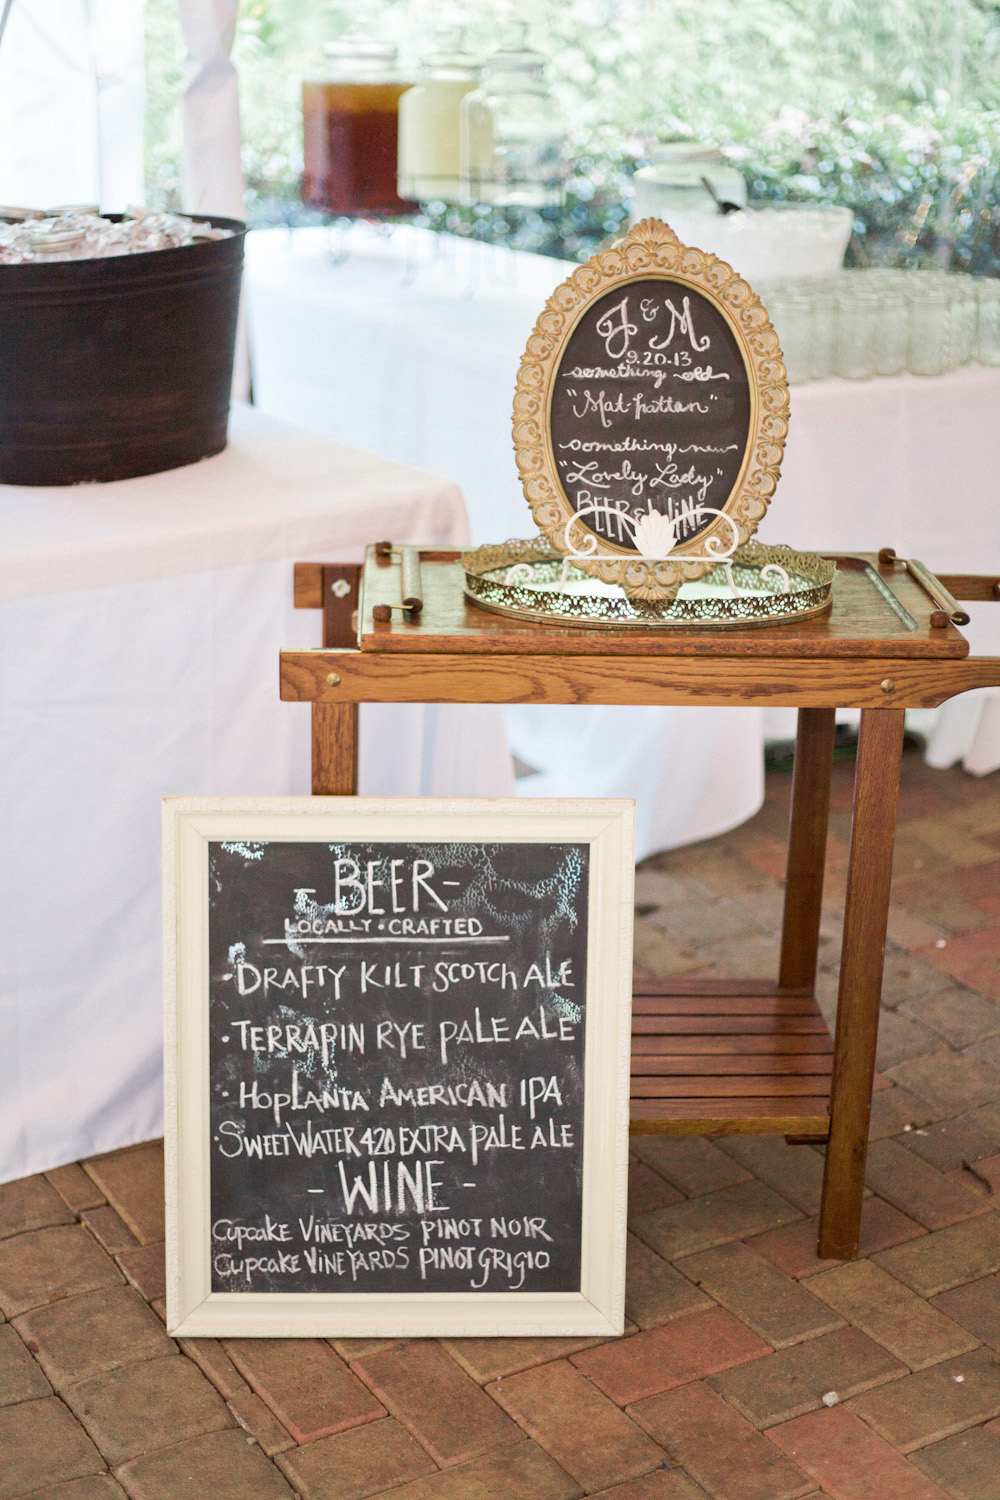 A distressed chalkboard added to the rustic feel of the reception, while an antique bar cart added a touch of class.